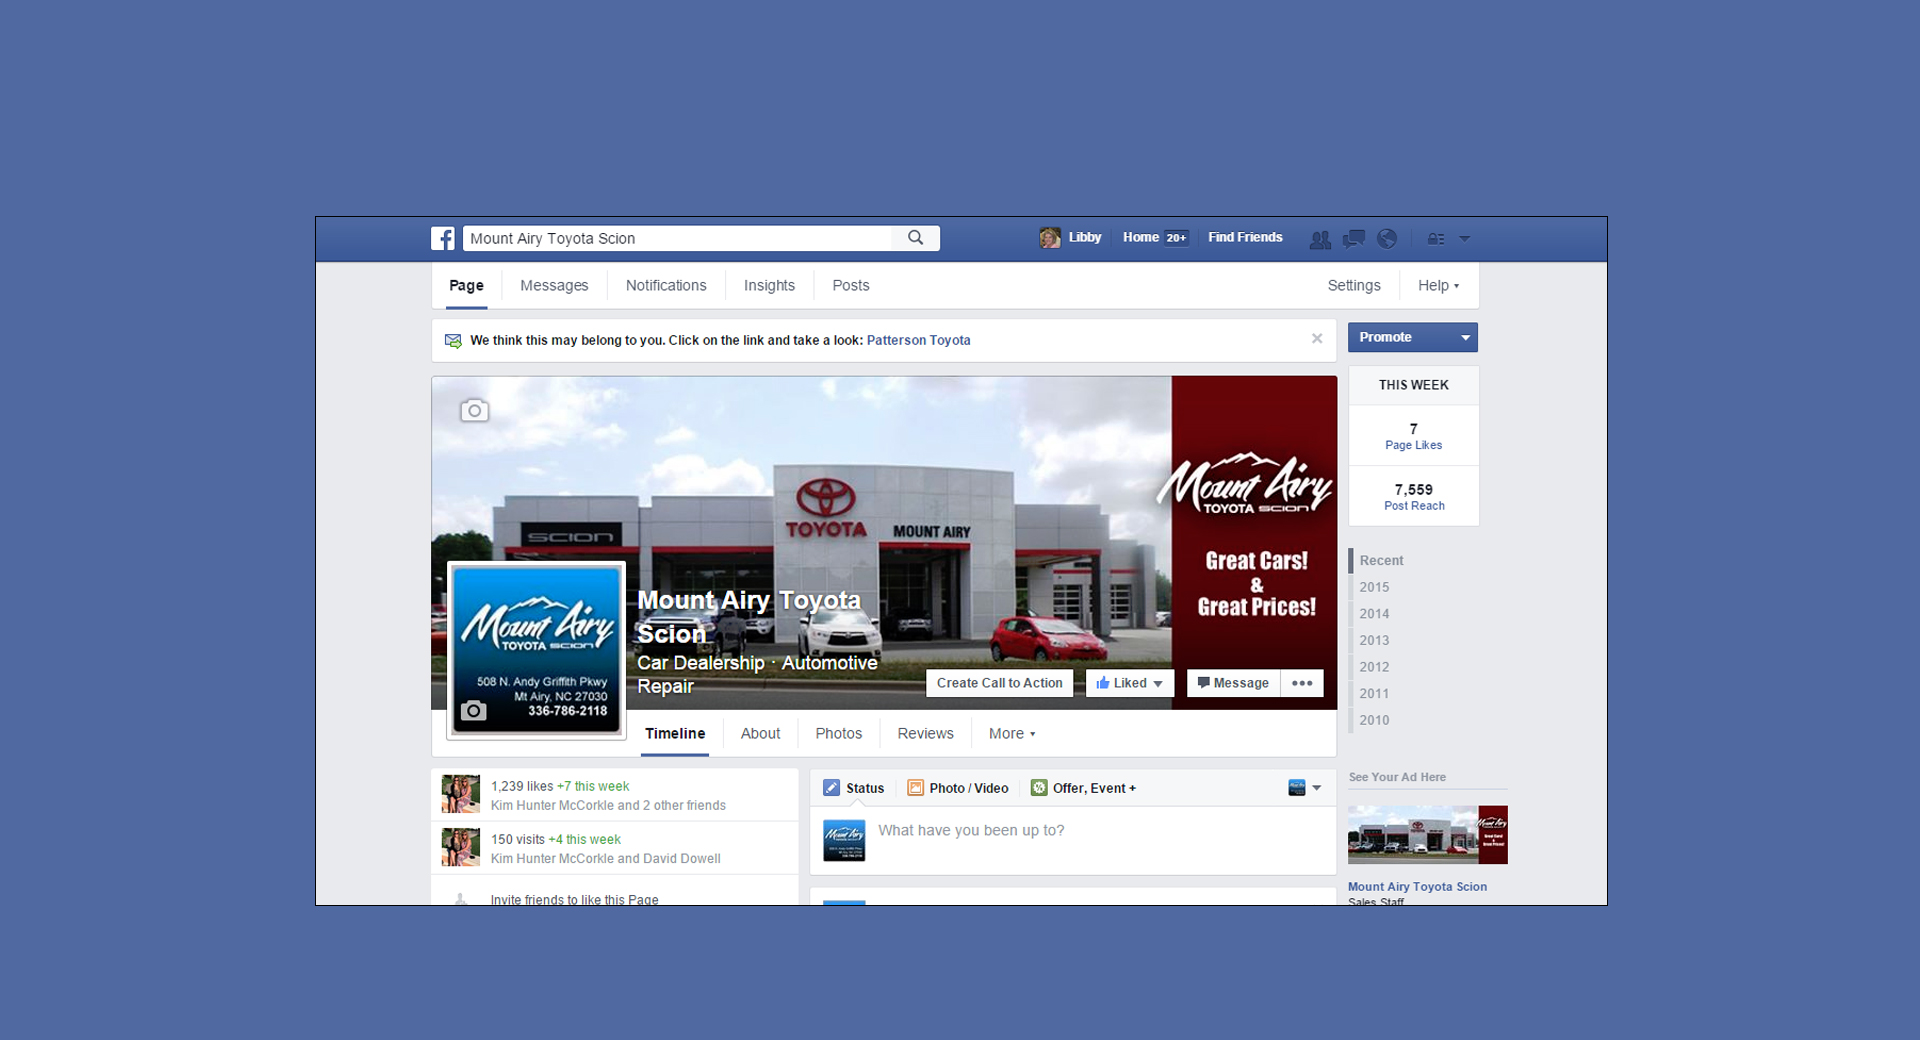 Mount Airy Toyota Facebook Page Management & Social Media Management by CCP Web Design